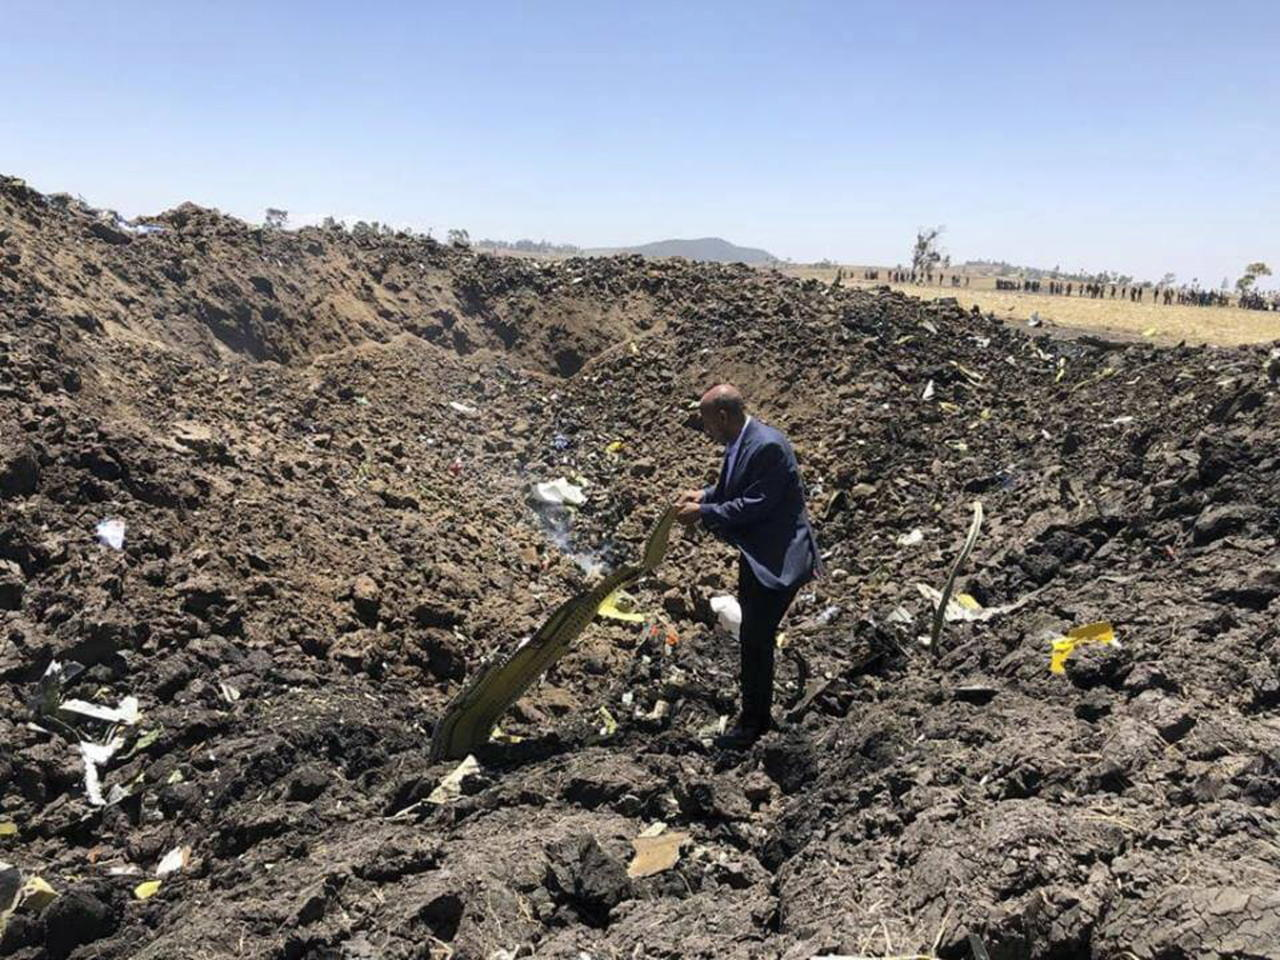 <p>In this photo taken from the Ethiopian Airlines Facebook page, the CEO of Ethiopian Airlines, Tewolde Gebremariam, looks at the wreckage of the plane that crashed shortly after takeoff from Addis Ababa, Ethiopia. (Facebook via AP/The Canadian Press) </p>